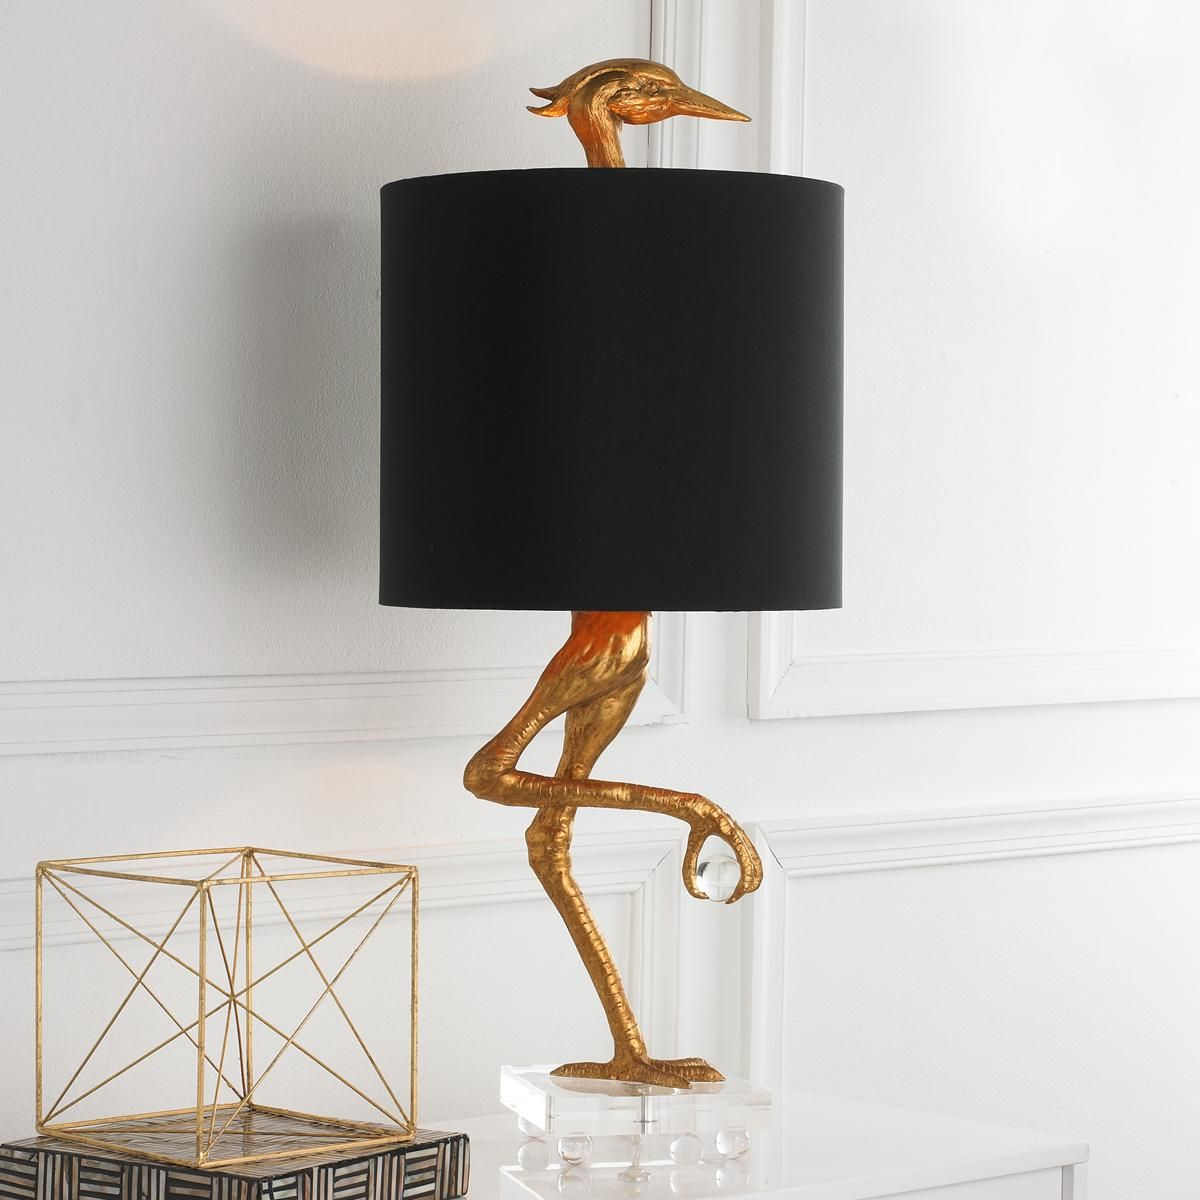 Stepping Out Stork Lamp Table Lamp Design Lamp Wood Lamp Design